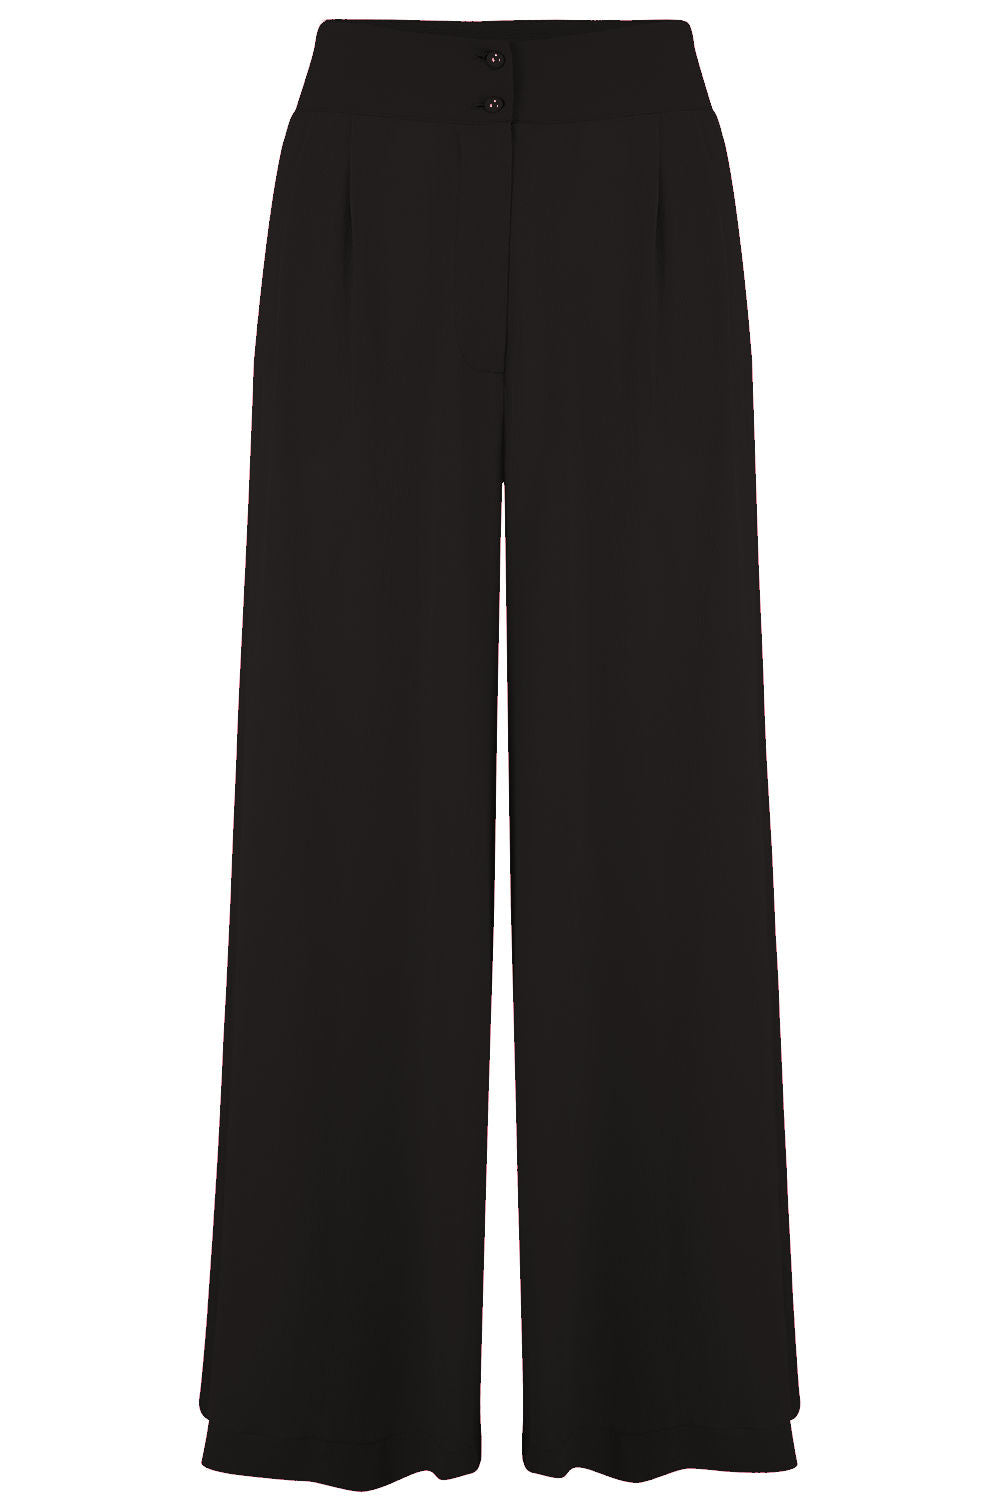 1960s Style Dresses, Clothing, Shoes UK Pre-Order The Sophia Plazo Wide Leg Trousers in Black Easy To Wear Vintage Inspired Style £39.00 AT vintagedancer.com